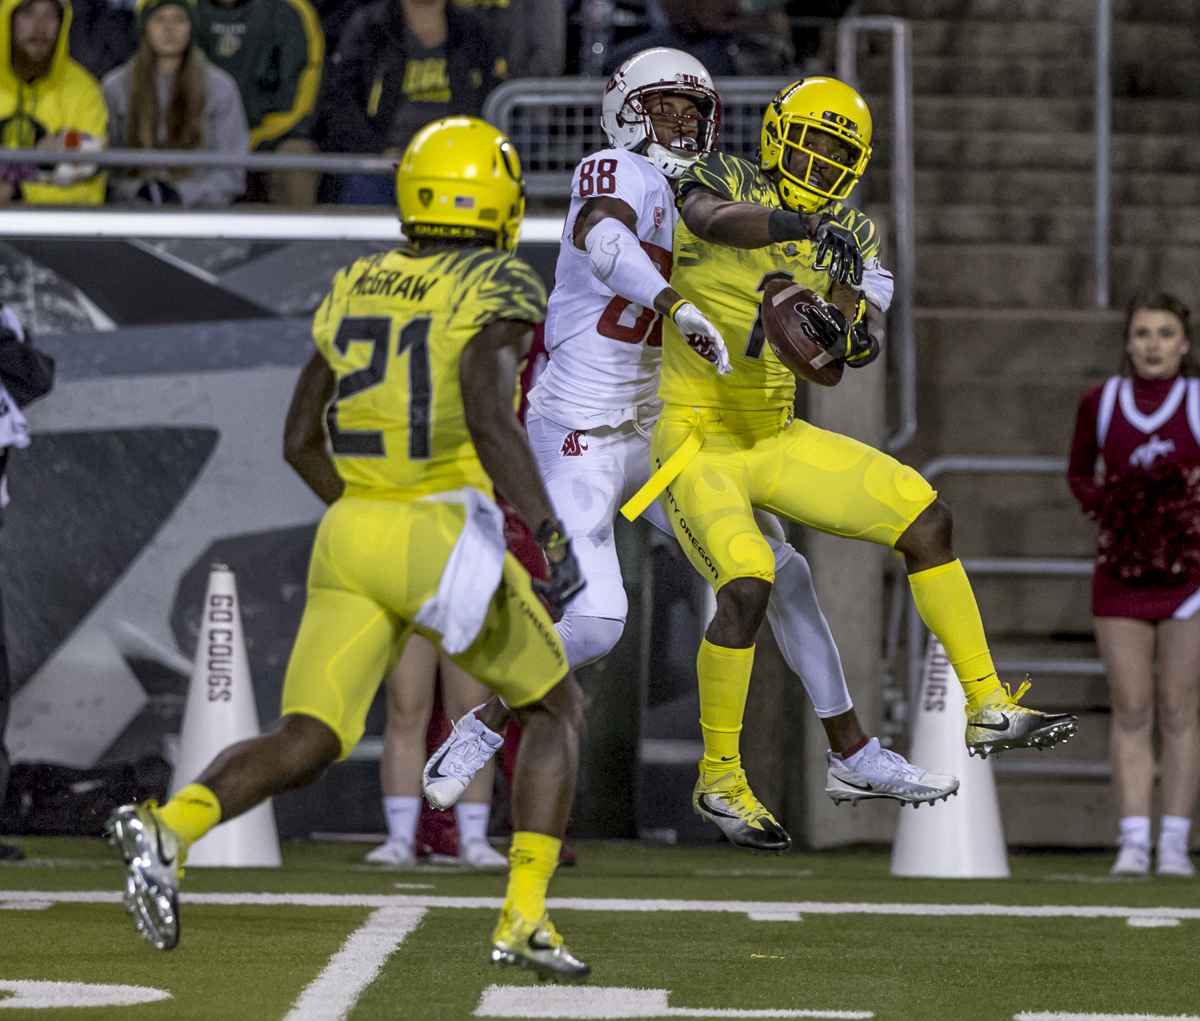 Oregon center back Arrion Springs (#1) breaks up a pass intended for Washington State wide receiver C.J. Dimry (#8). The Washington State Cougars defeated the Oregon Ducks 33 to 10 on Saturday, October 7, 2017. Saturday's game was the first home loss for the Ducks under new head coach Willie Taggart. Photo by Ben Lonergan, Oregon News Lab